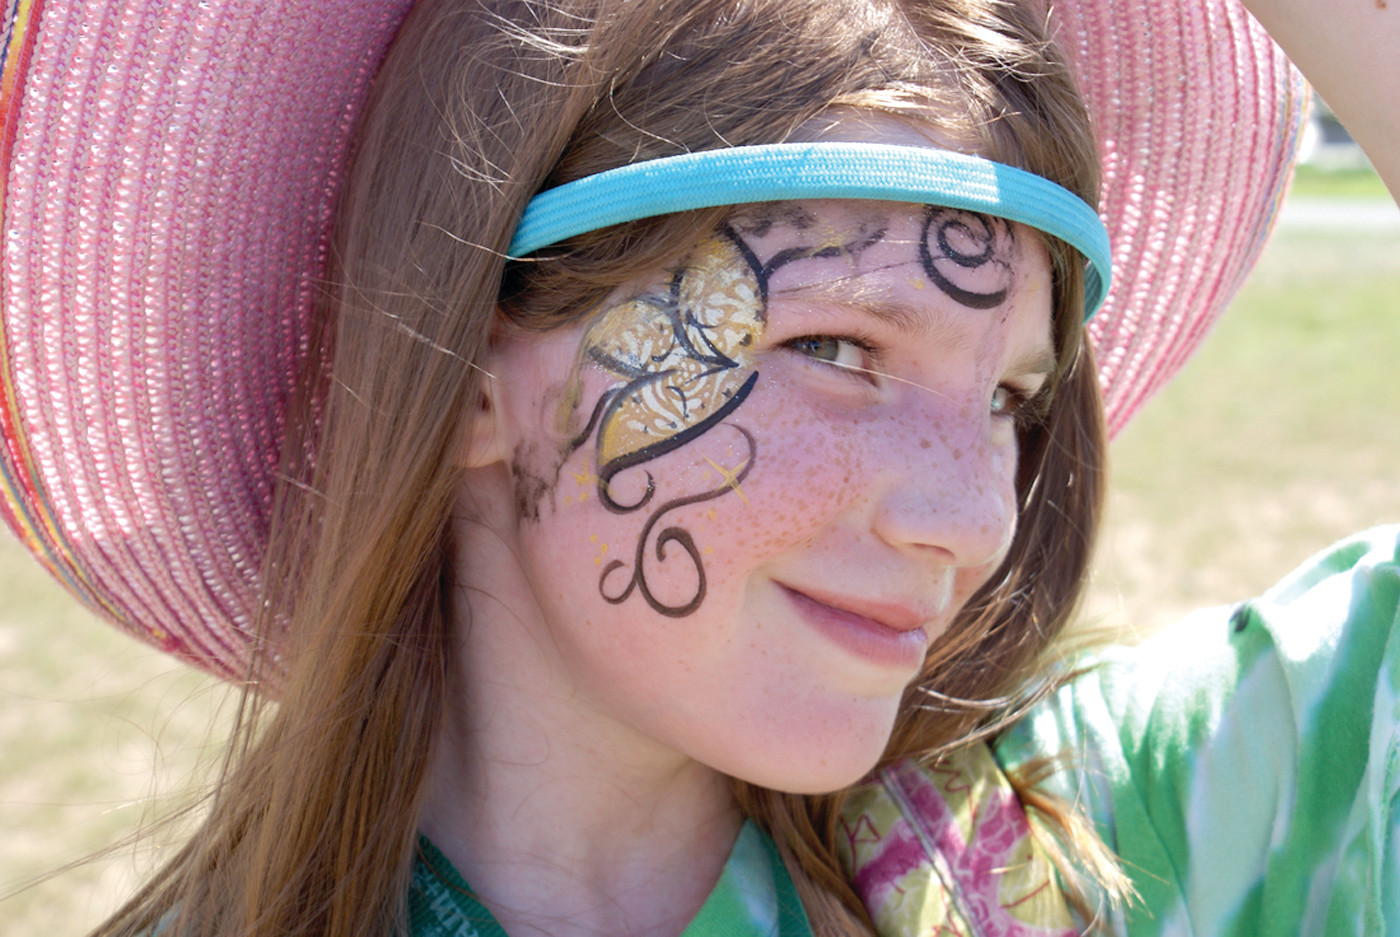 A HAPPY CAMPER: A member of the Rhode Trippin' group from Camp XL, Tomi Seal, enjoyed Kidpalooza and having her face painted during the event